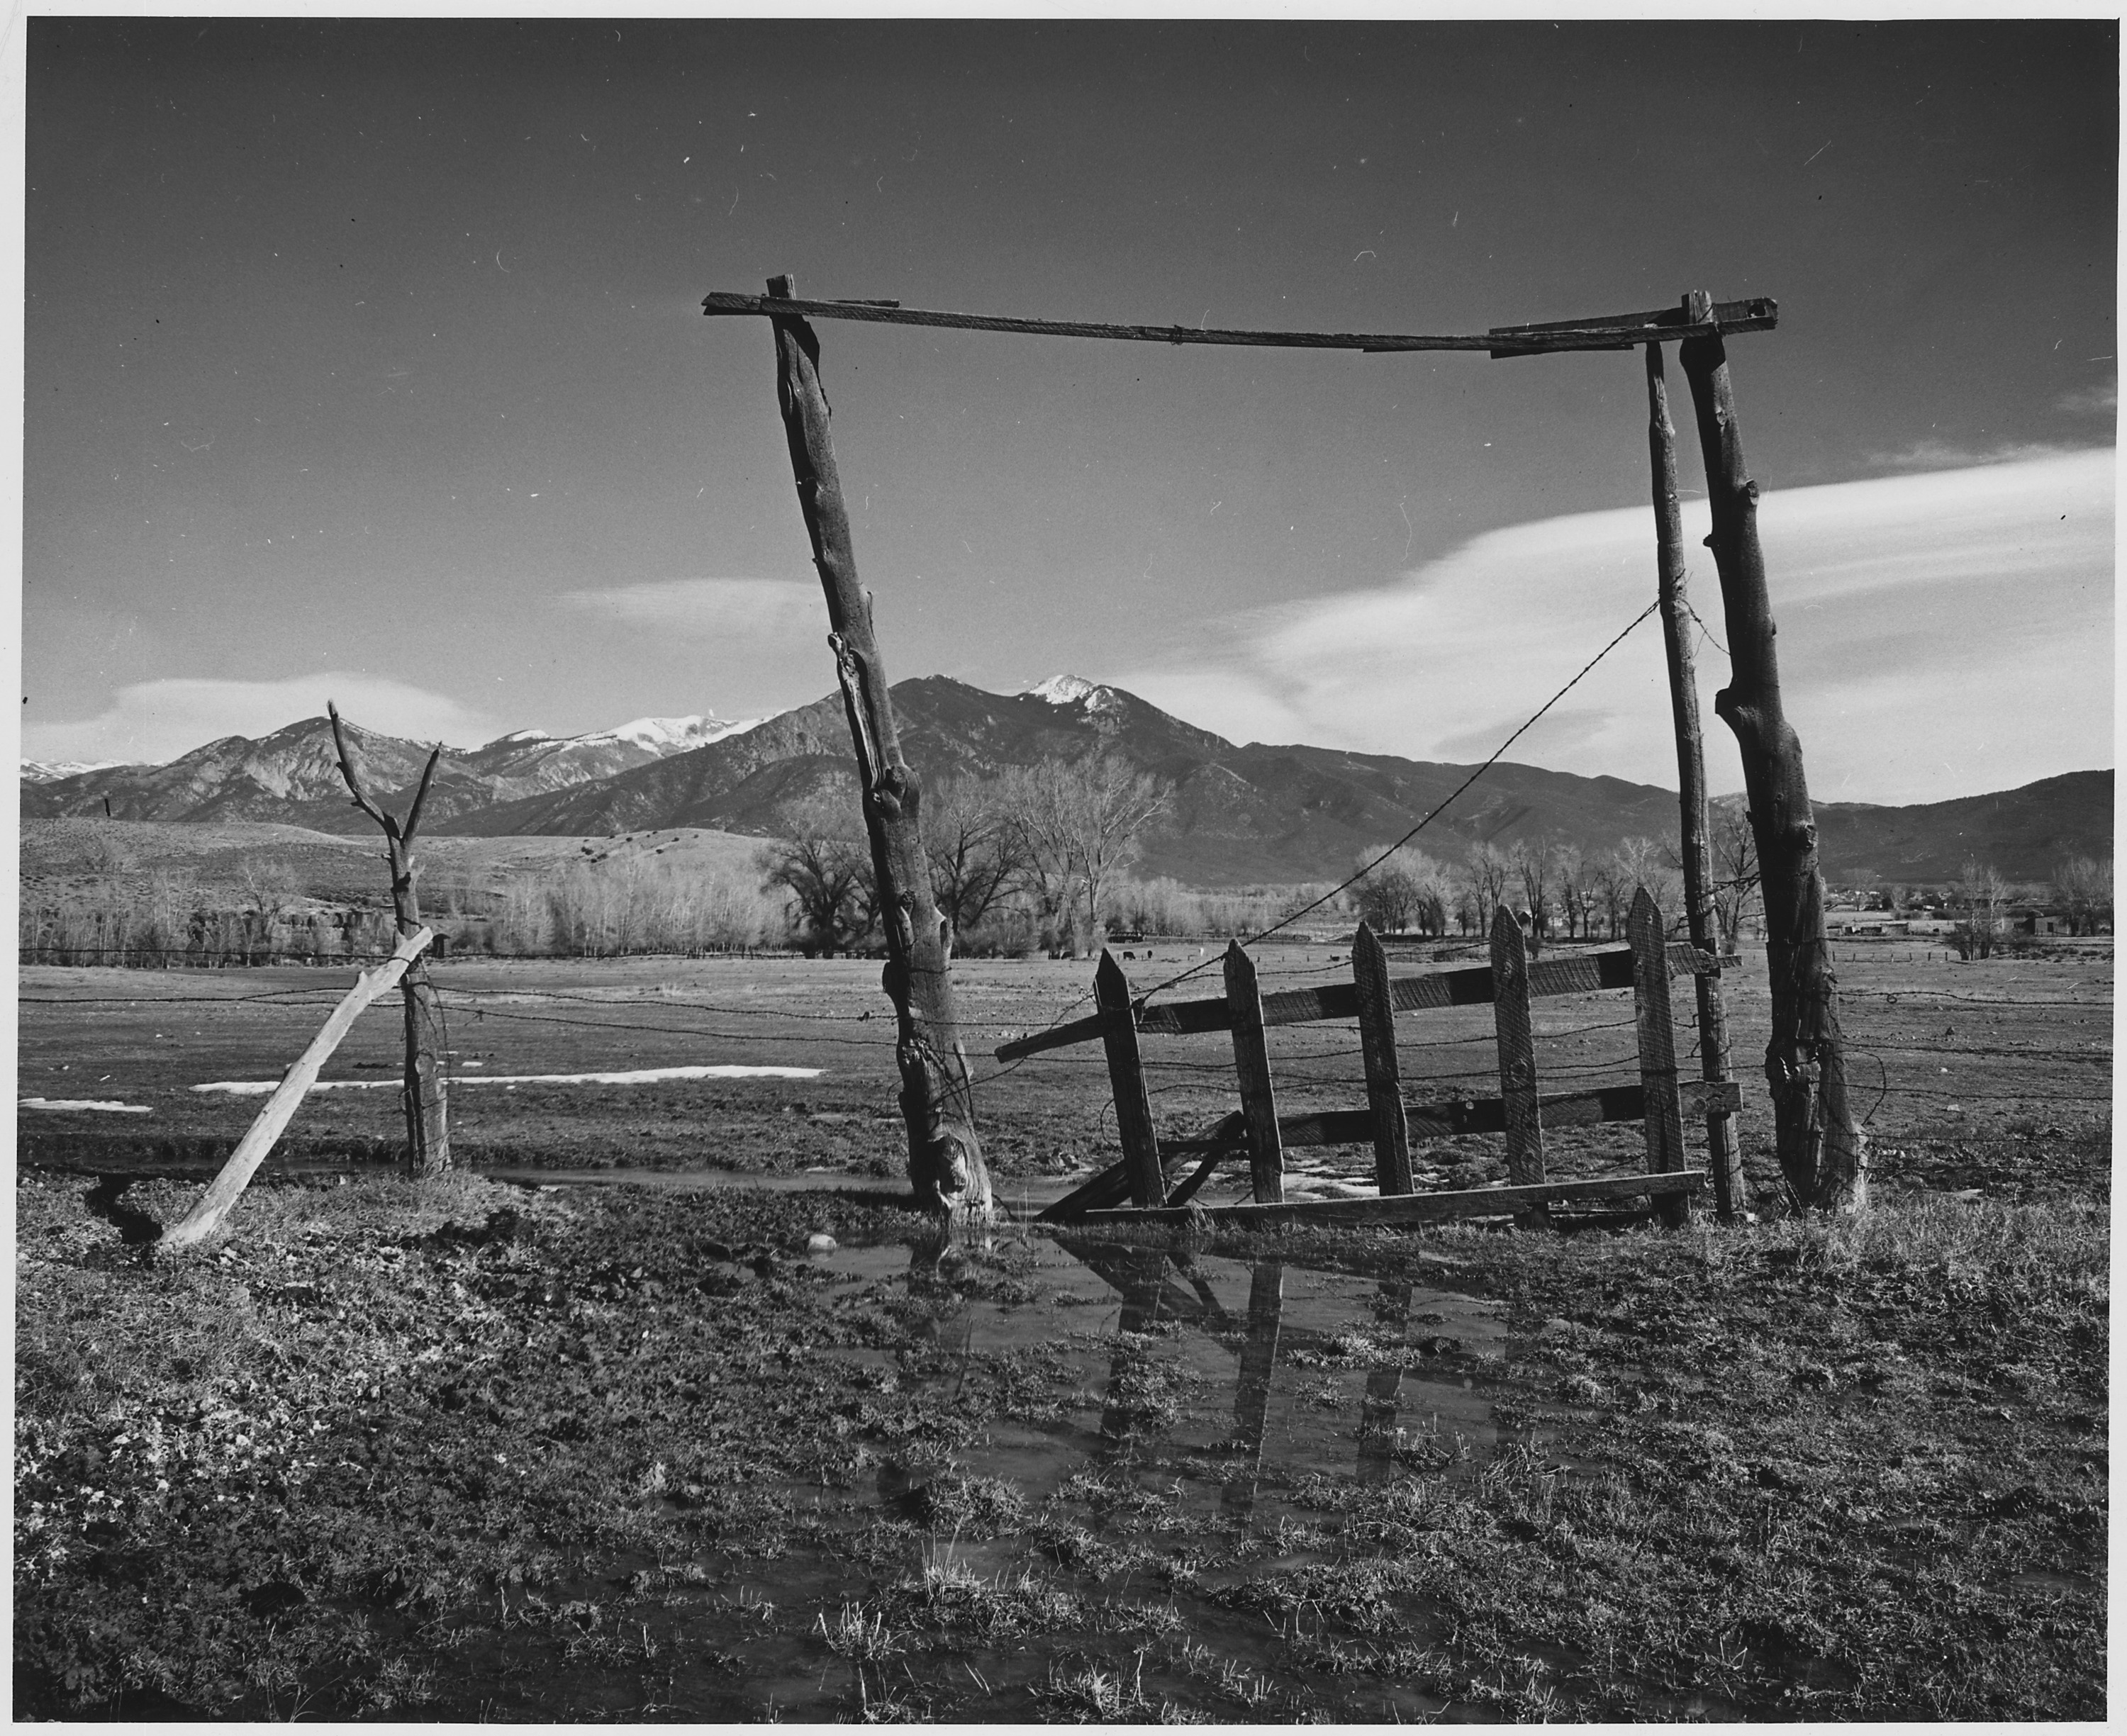 New mexico taos county llano - Taos Mountain From Los Cordovas 1941